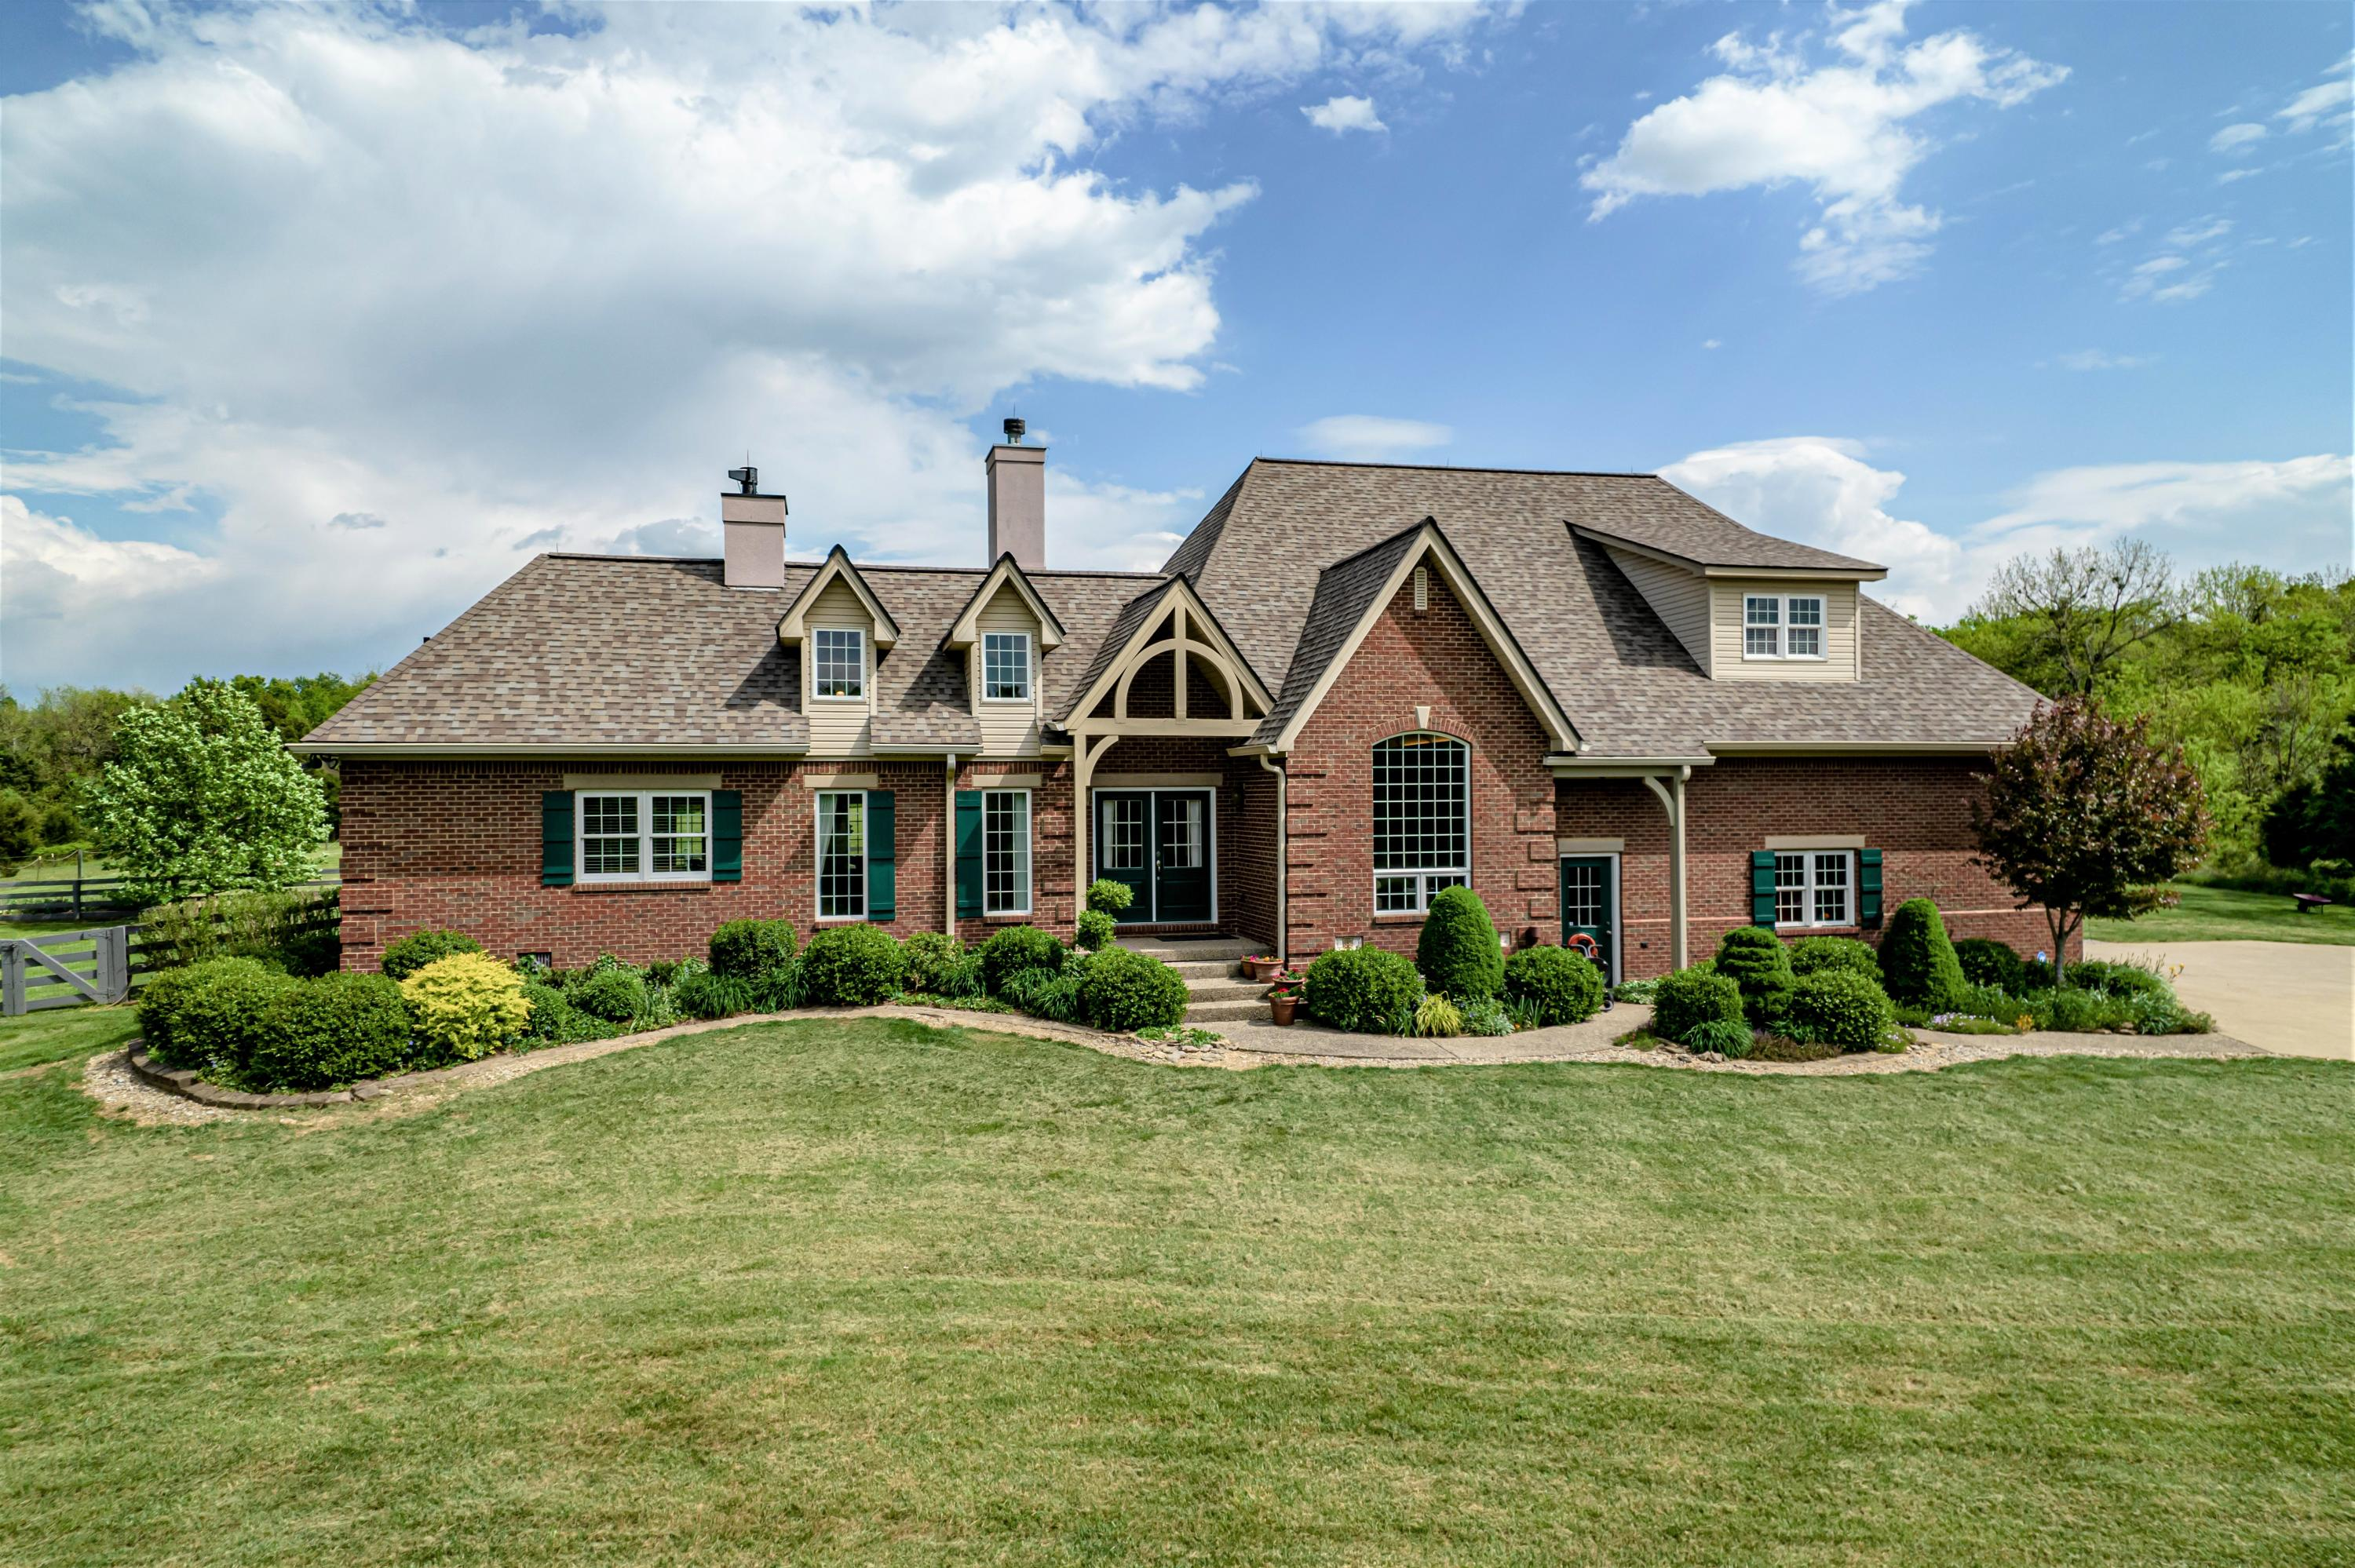 3001 Windy Hills Drive, Bardstown, KY 40004